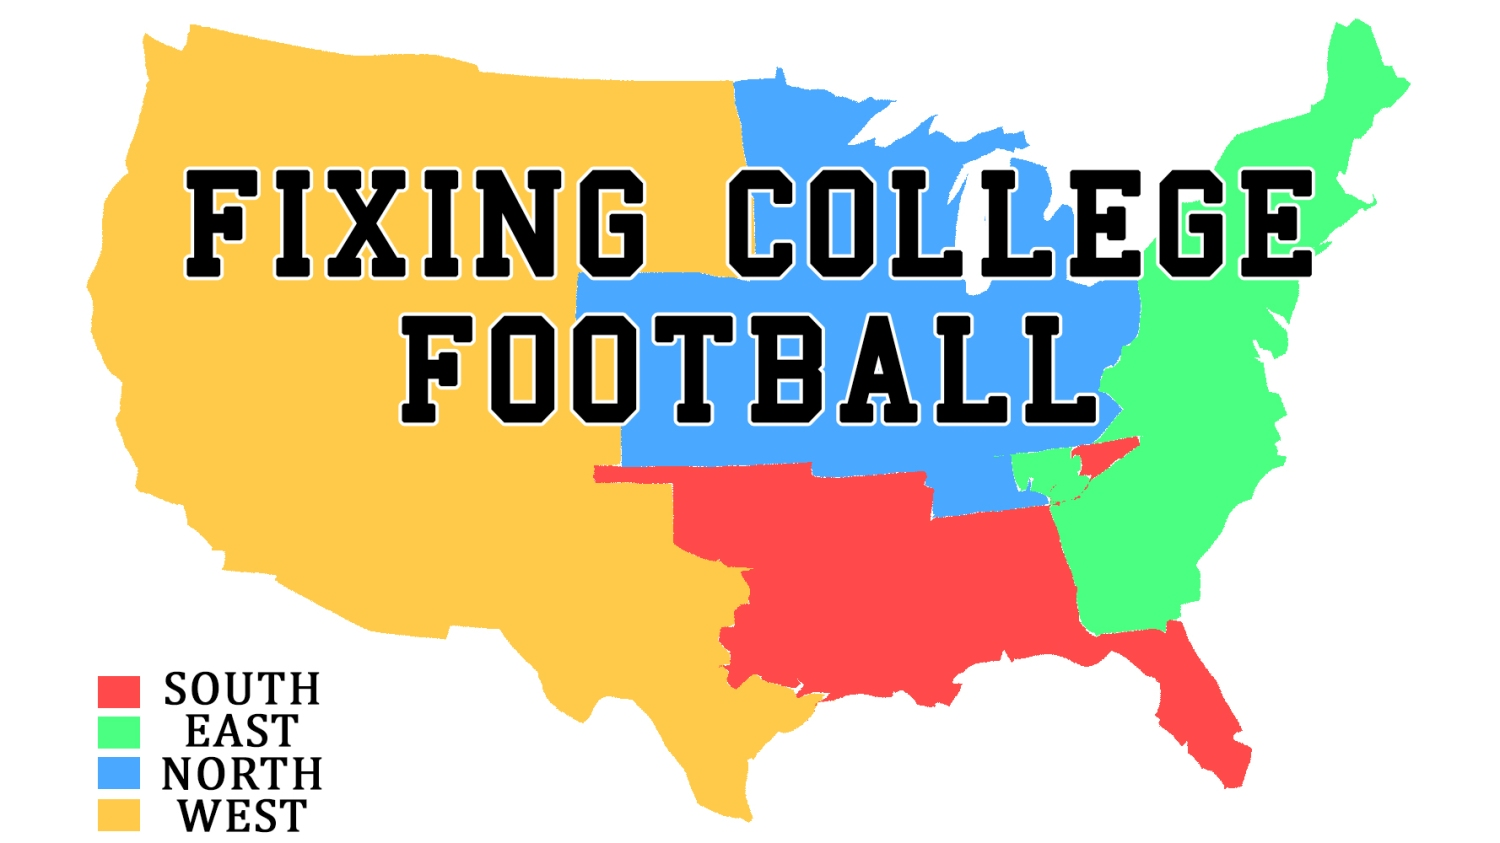 Improve College Football By Realigning Conferences And Adding Relegation